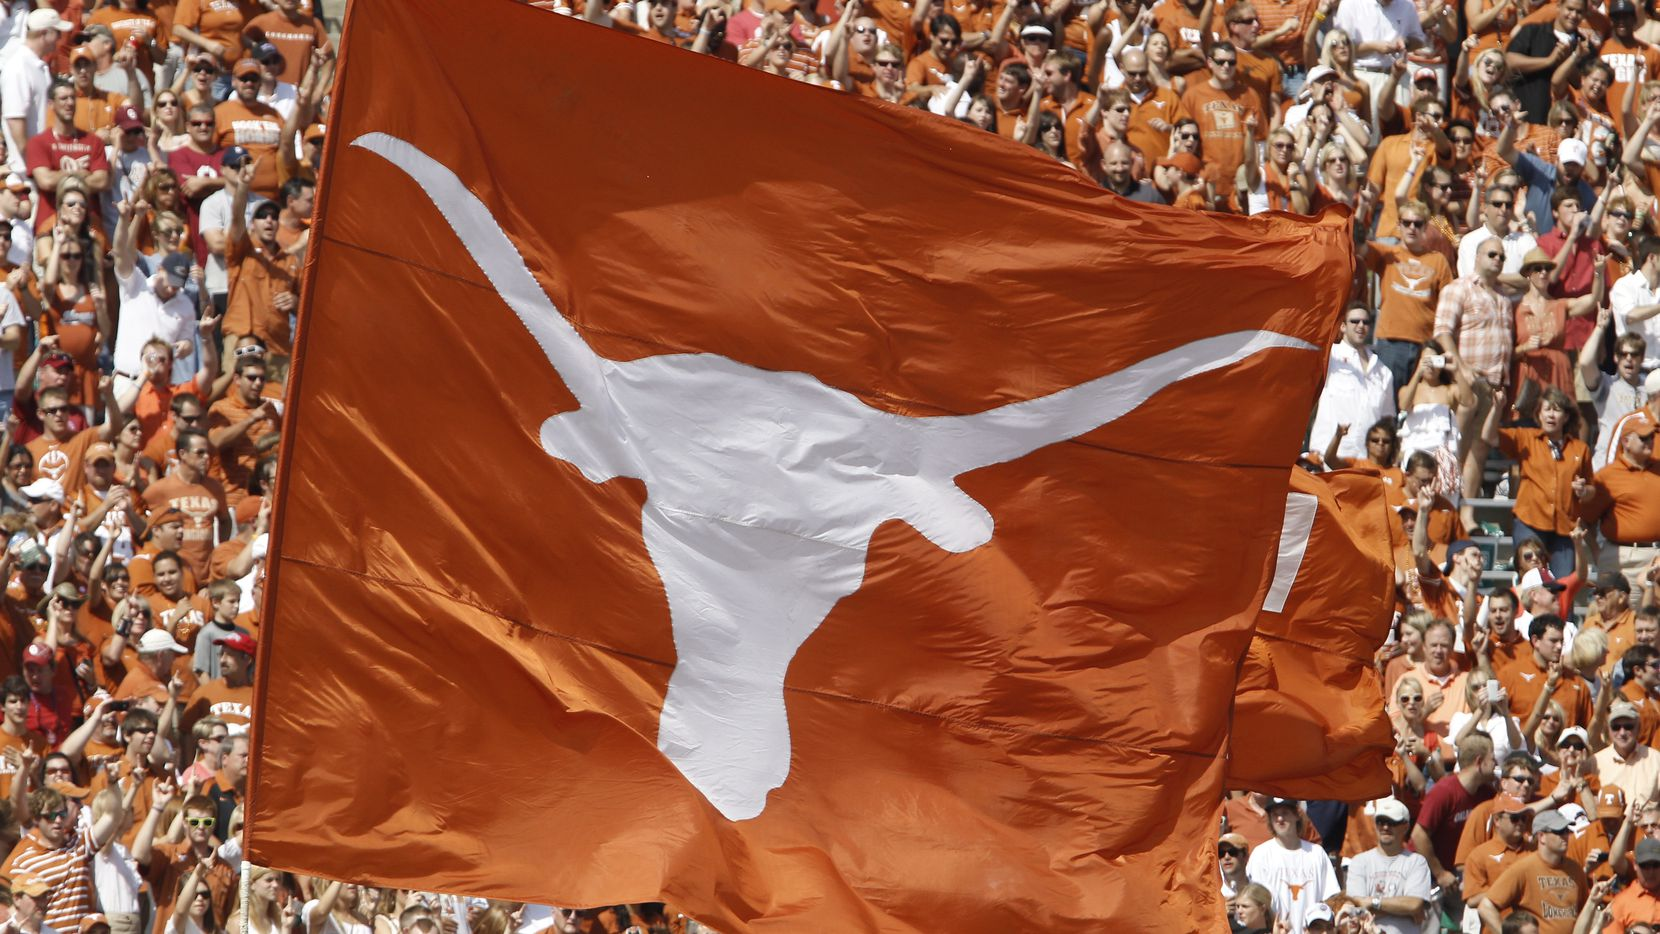 FILE - A Texas Longhorns flag is pictured during a game at the Cotton Bowl in Dallas on Saturday, Oct. 8, 2011.